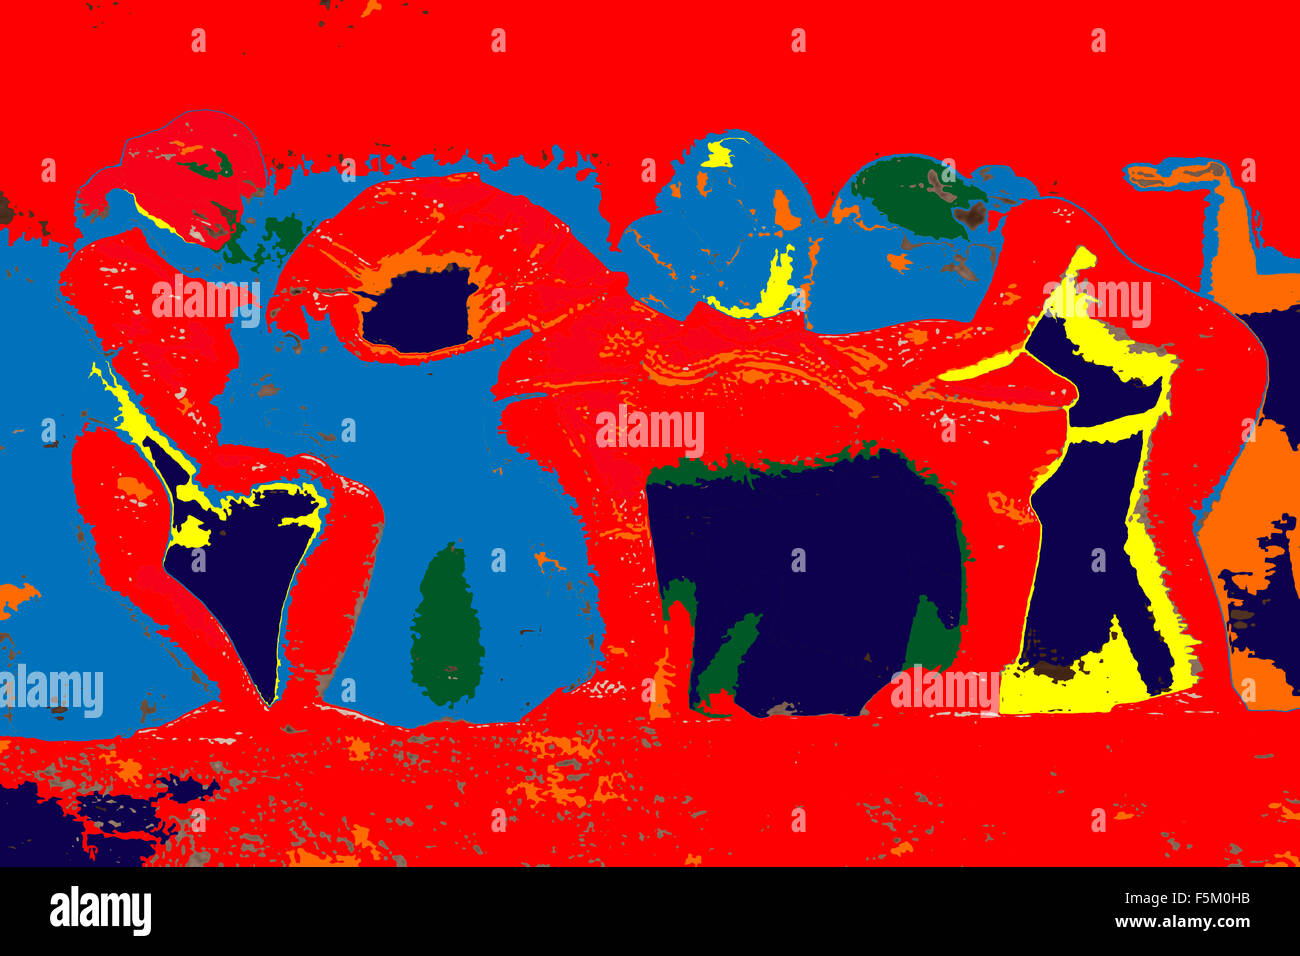 L'art abstrait peinture, Inde, Asie Photo Stock